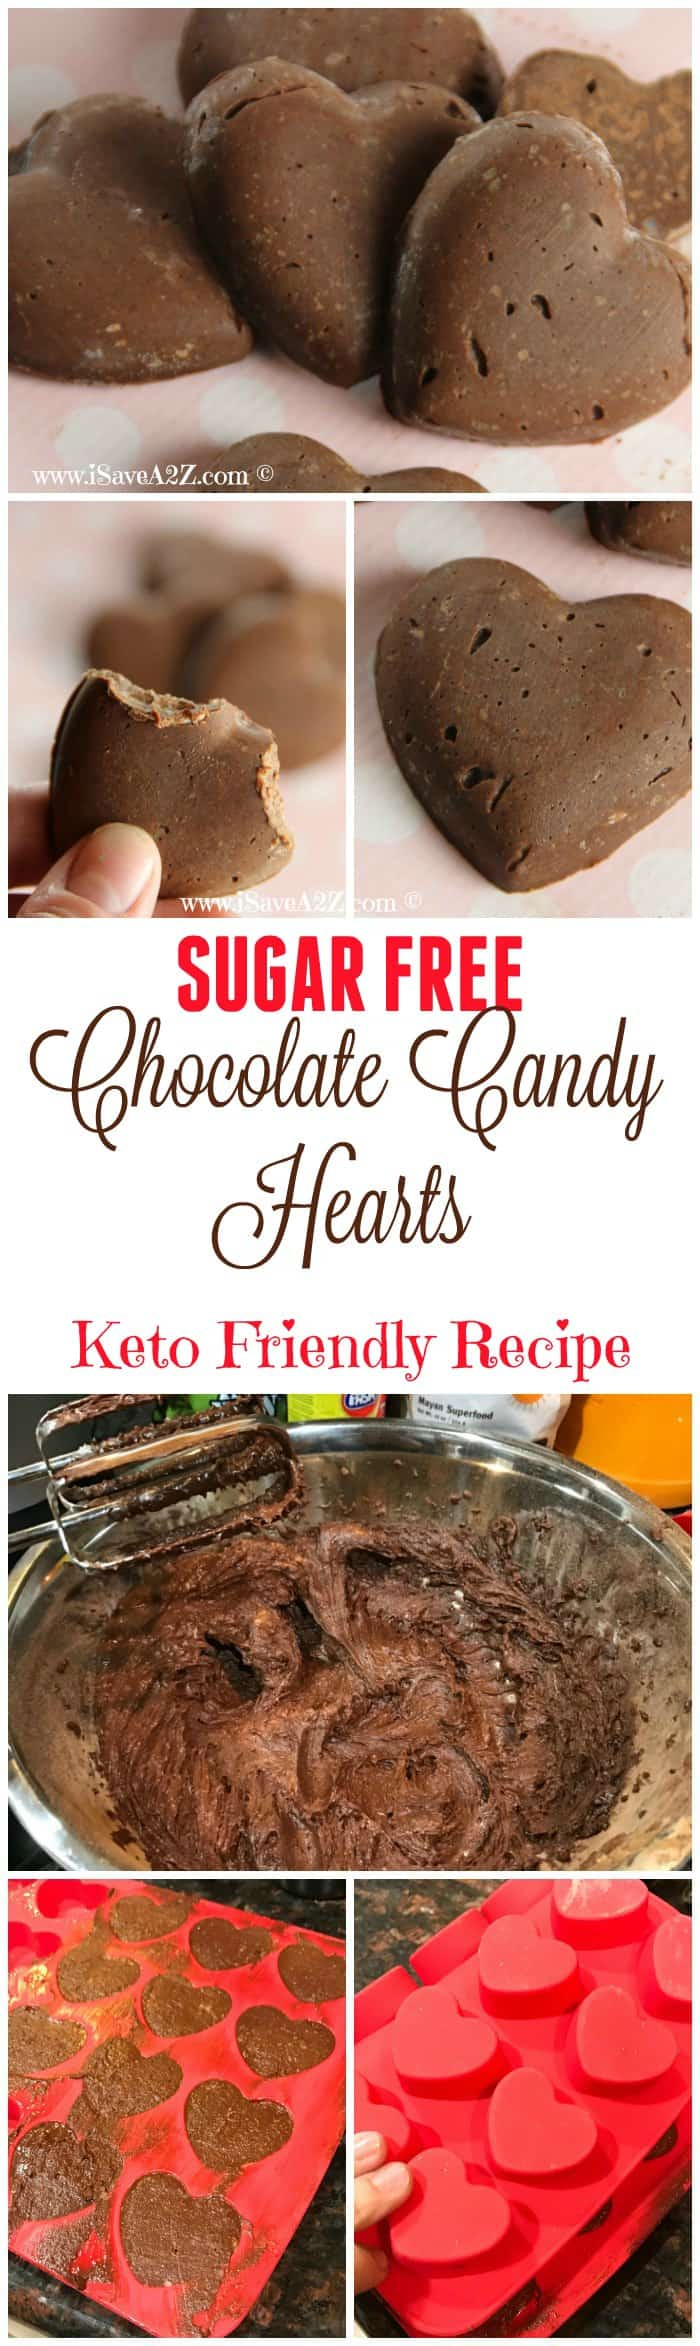 Sugar Free Chocolate Candy Hearts Recipe